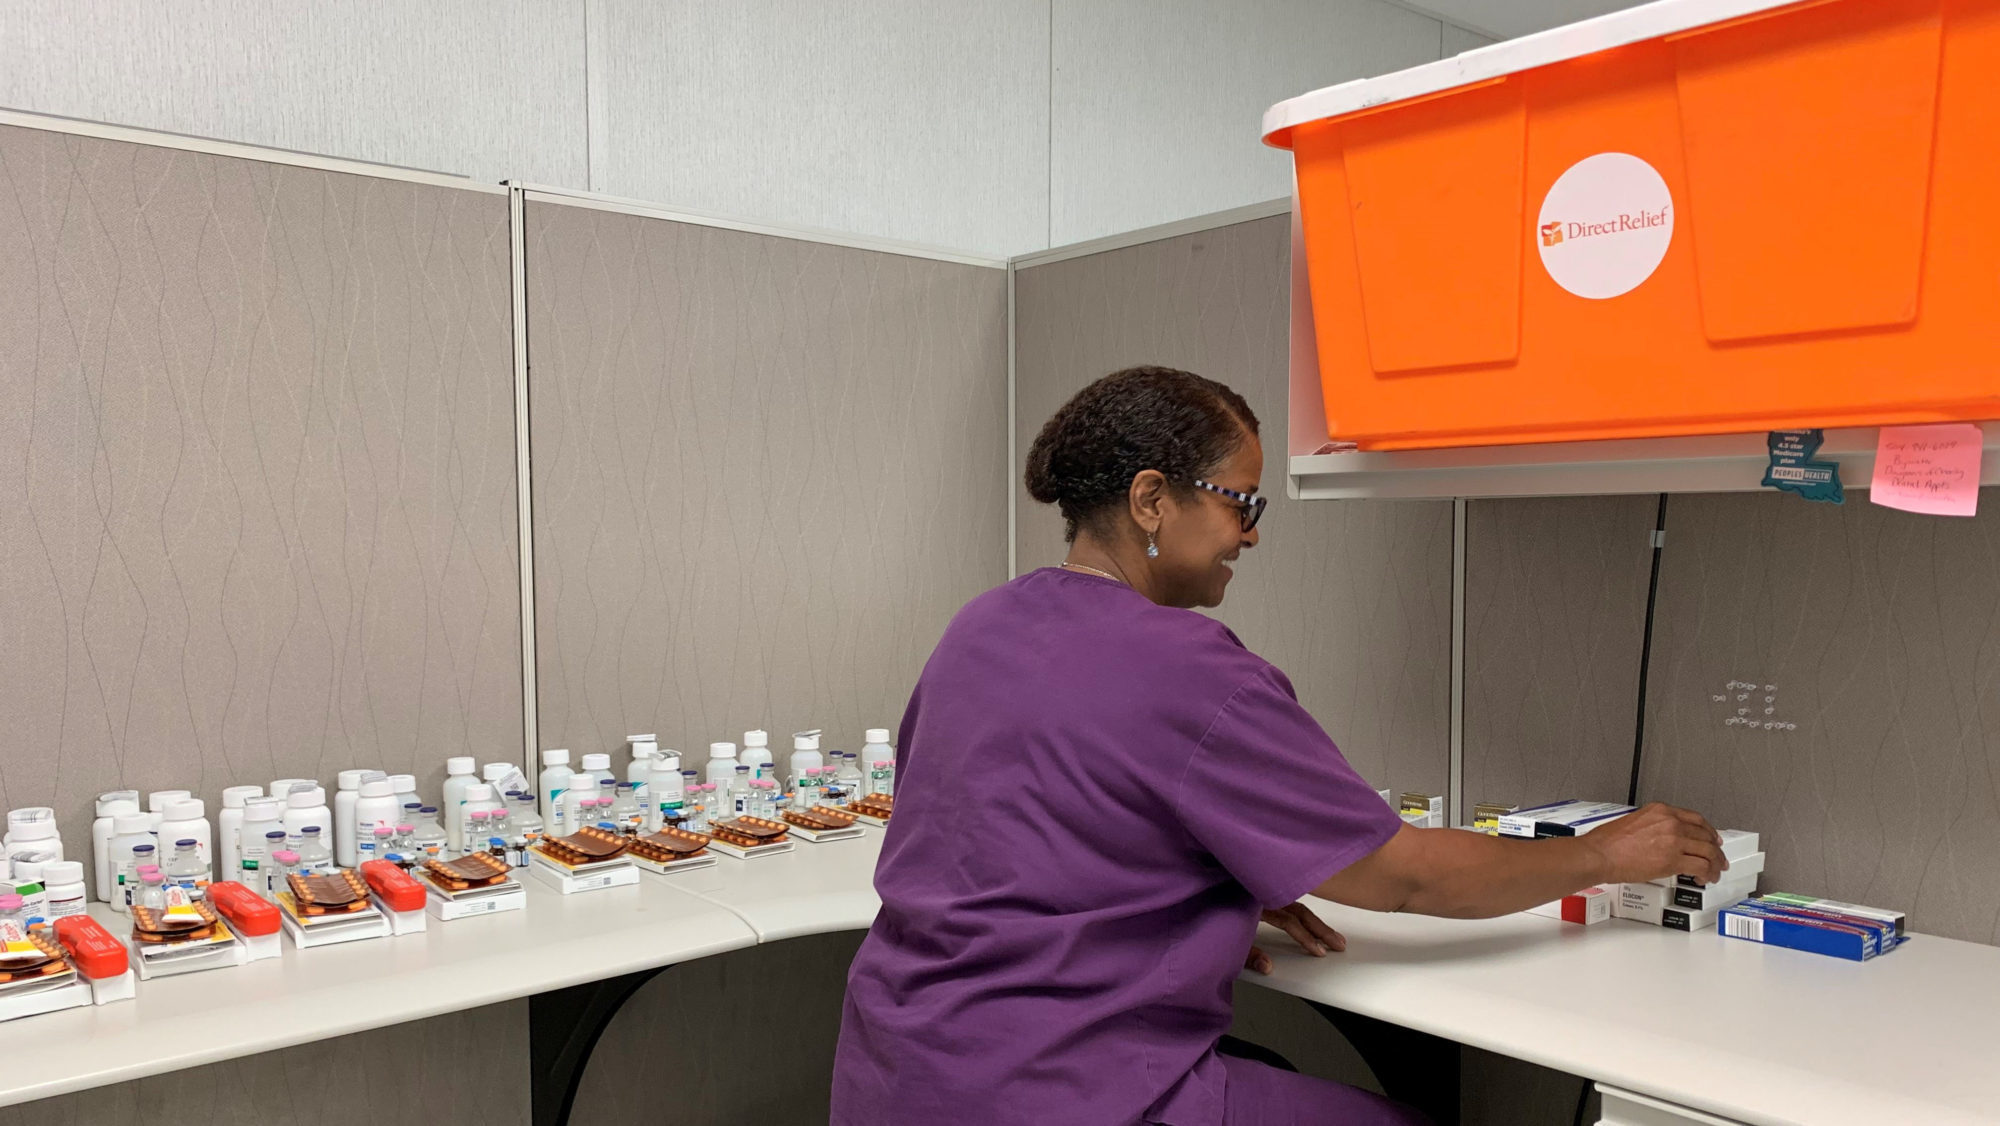 A staff member at Baptist Community Health Services sorts the contents of a Direct Relief Hurricane Prep Pack. Packs were placed at strategic locations across Louisiana in preparation for extreme weather. (Photo courtesy of Baptist Community Health Services)